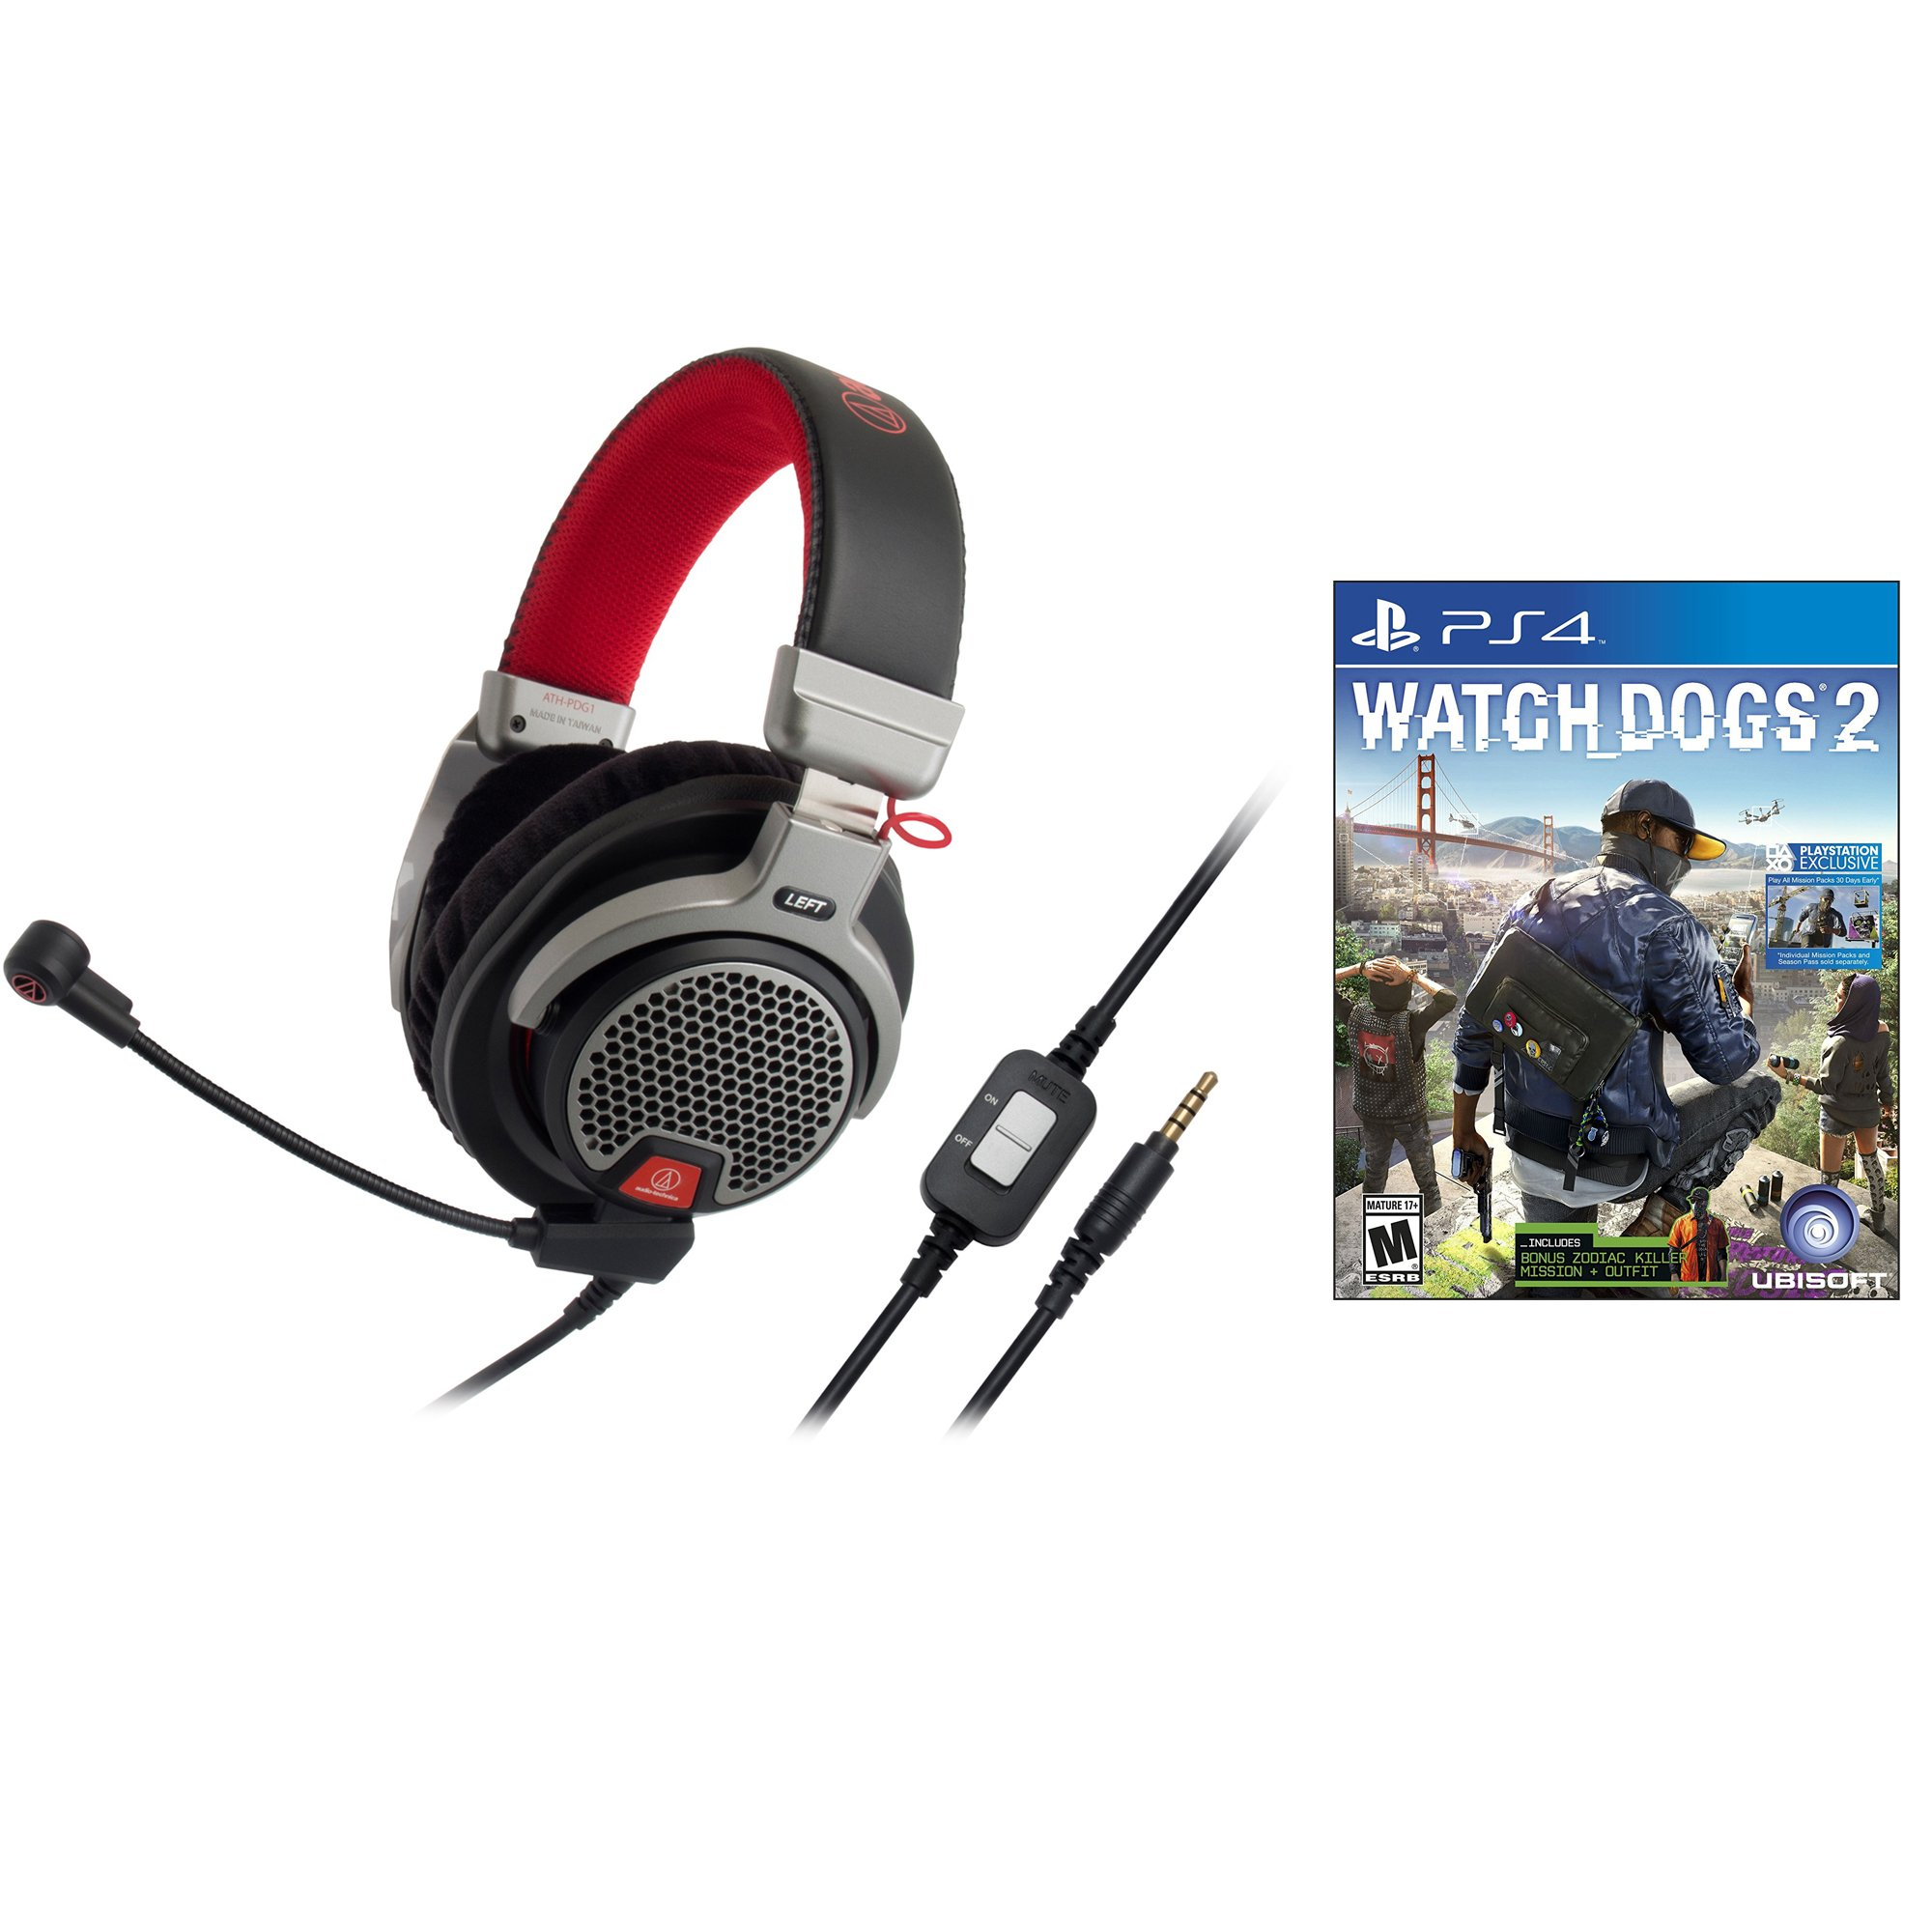 Audio-Technica ATH-PDG1 OpenBack Gaming Headset w Watch Dogs 2 for Playstation 4